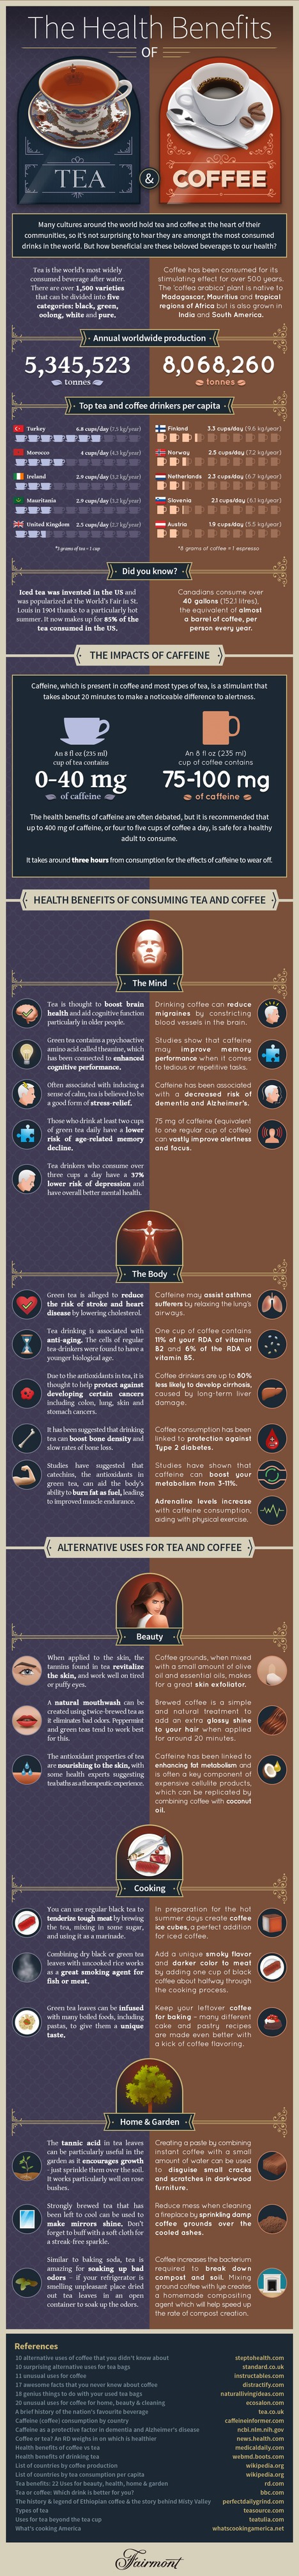 The Health Benefits of Tea and Coffee